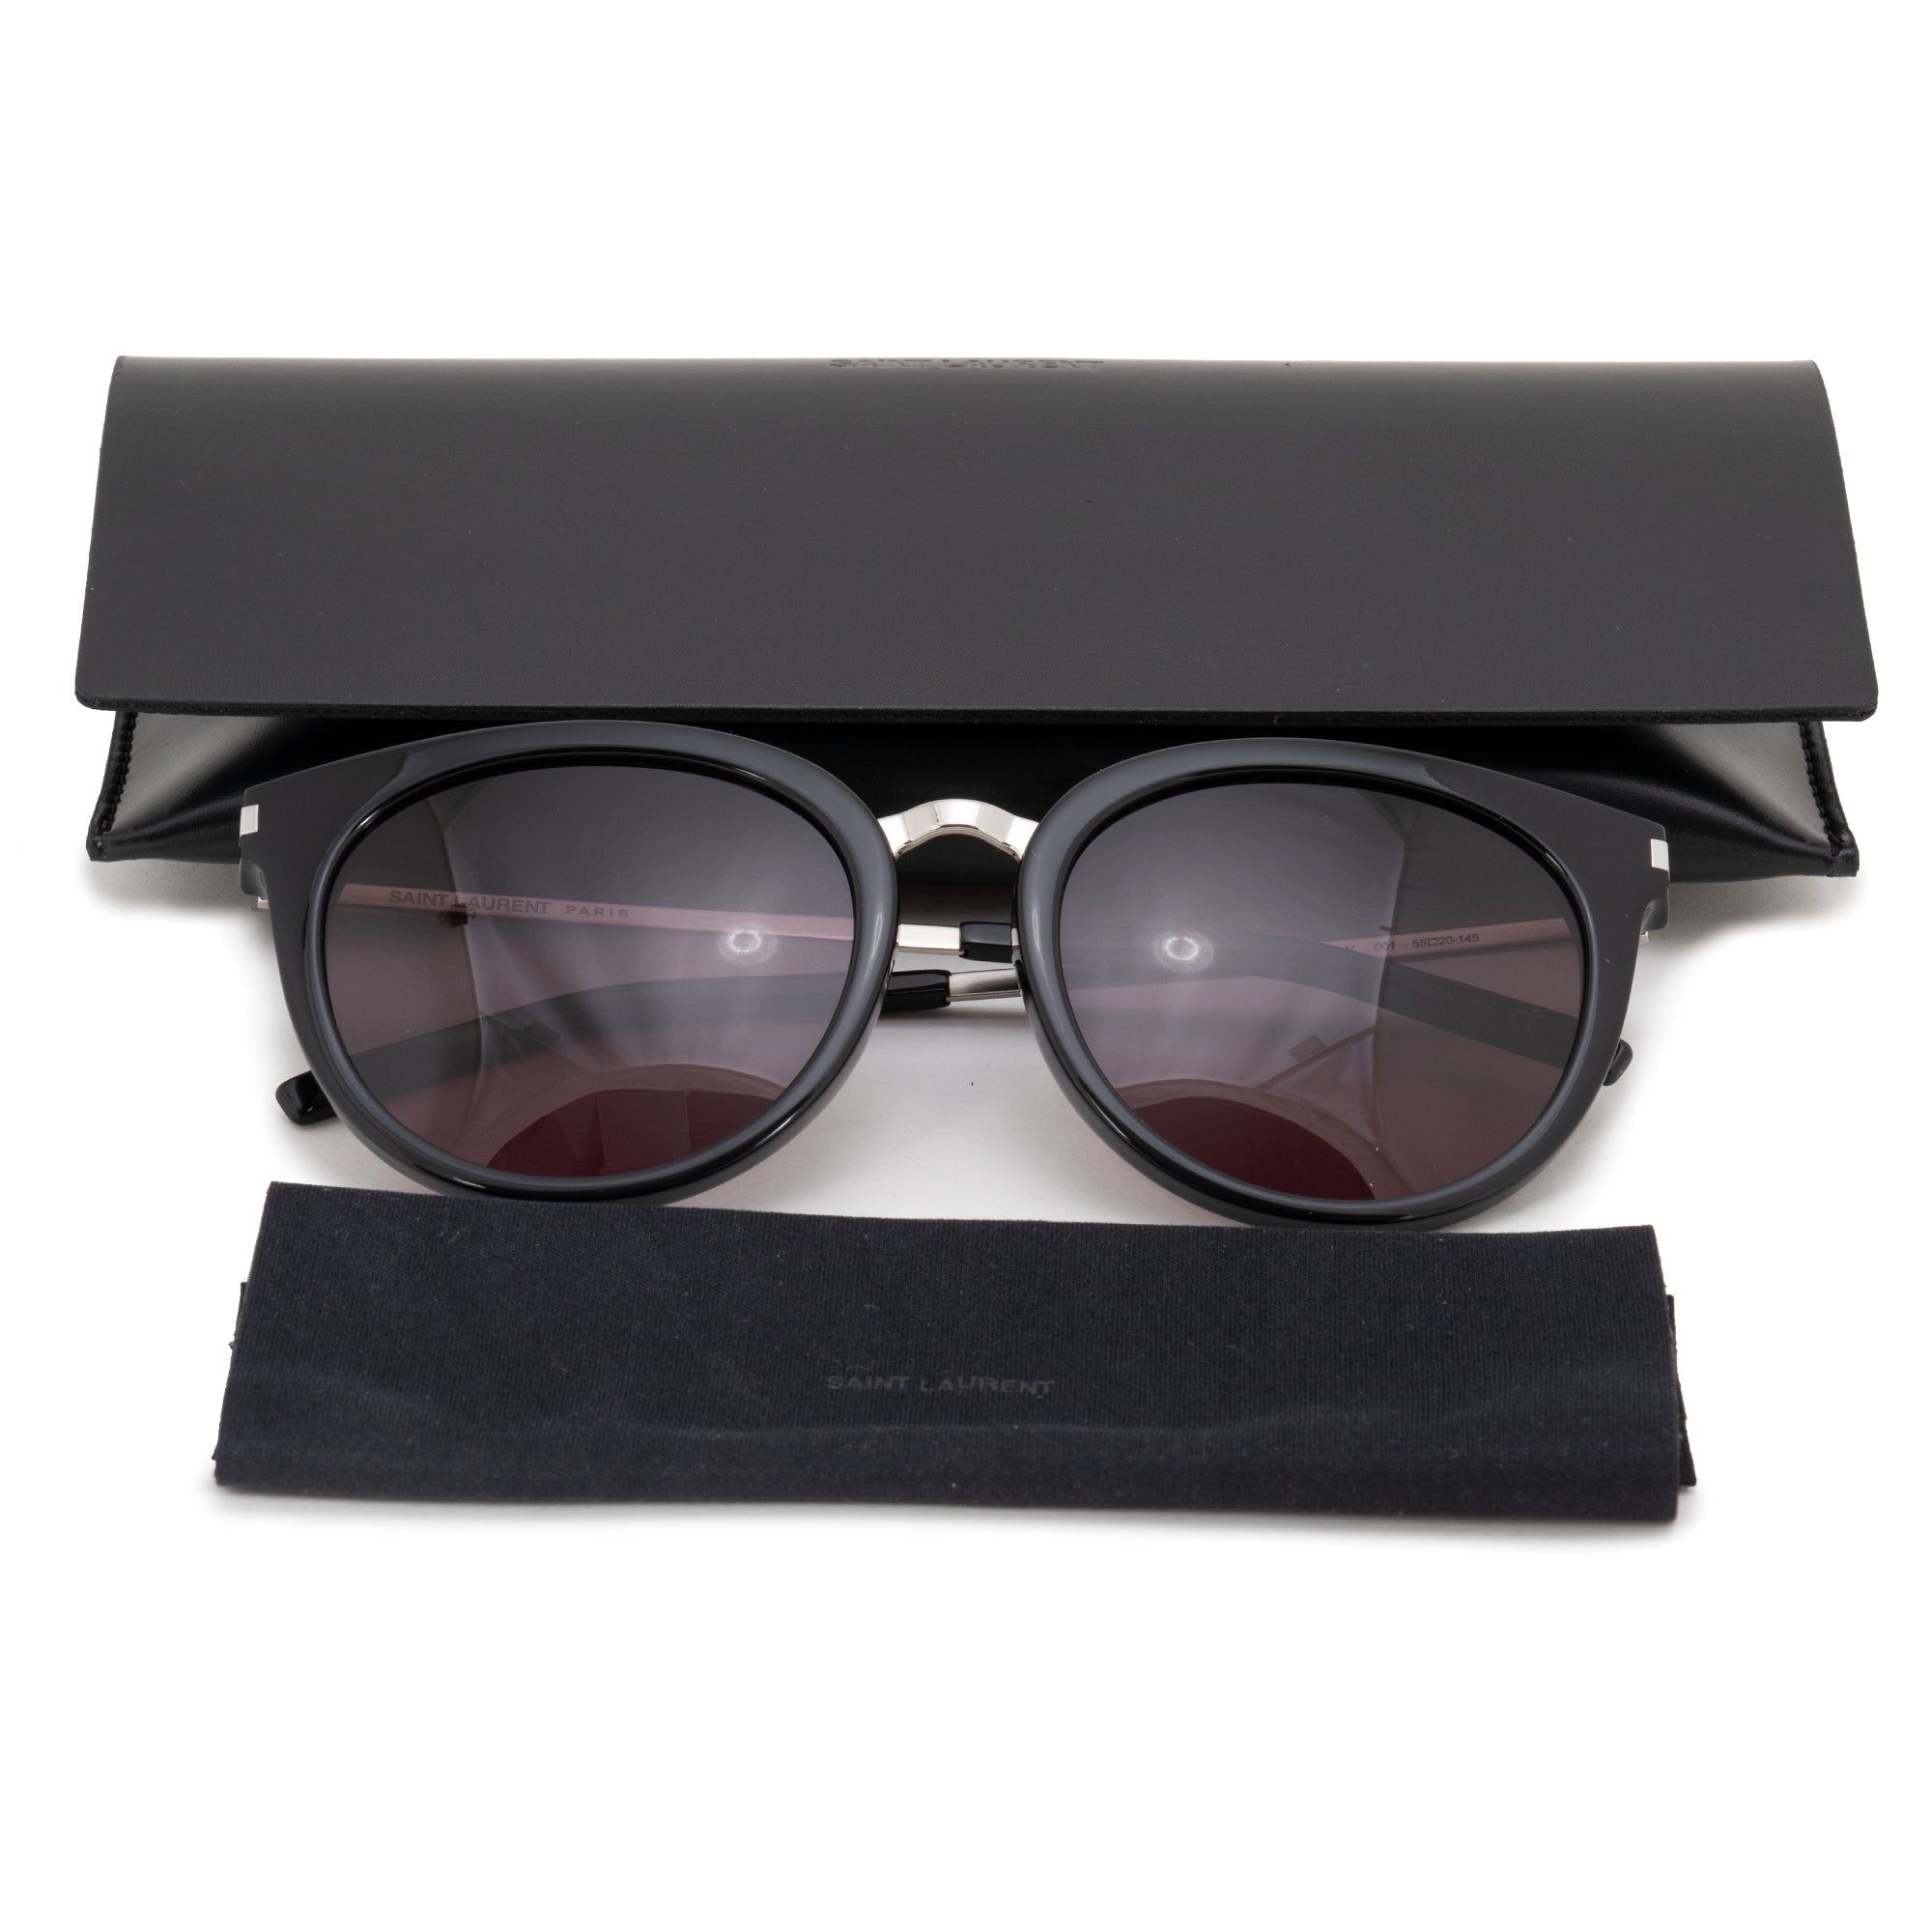 Saint Laurent Full Rimmed Sunglasses SL123K 001 55